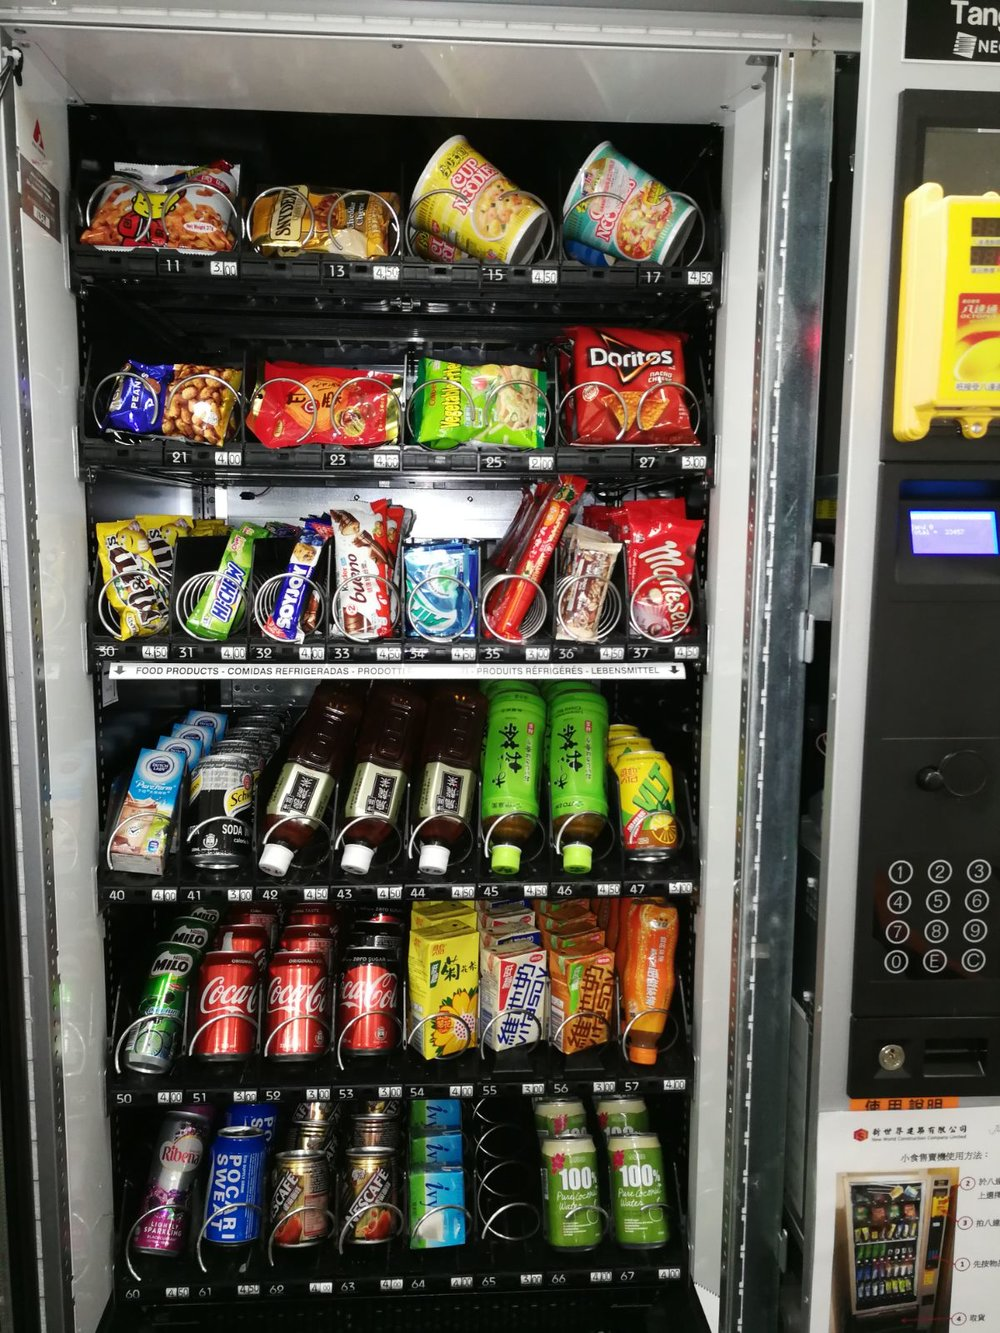 Freshup, vending machine hk, interactive, food, beverage, smart retail, convenient, vending services, professional, corporations, New World Development Company Limited